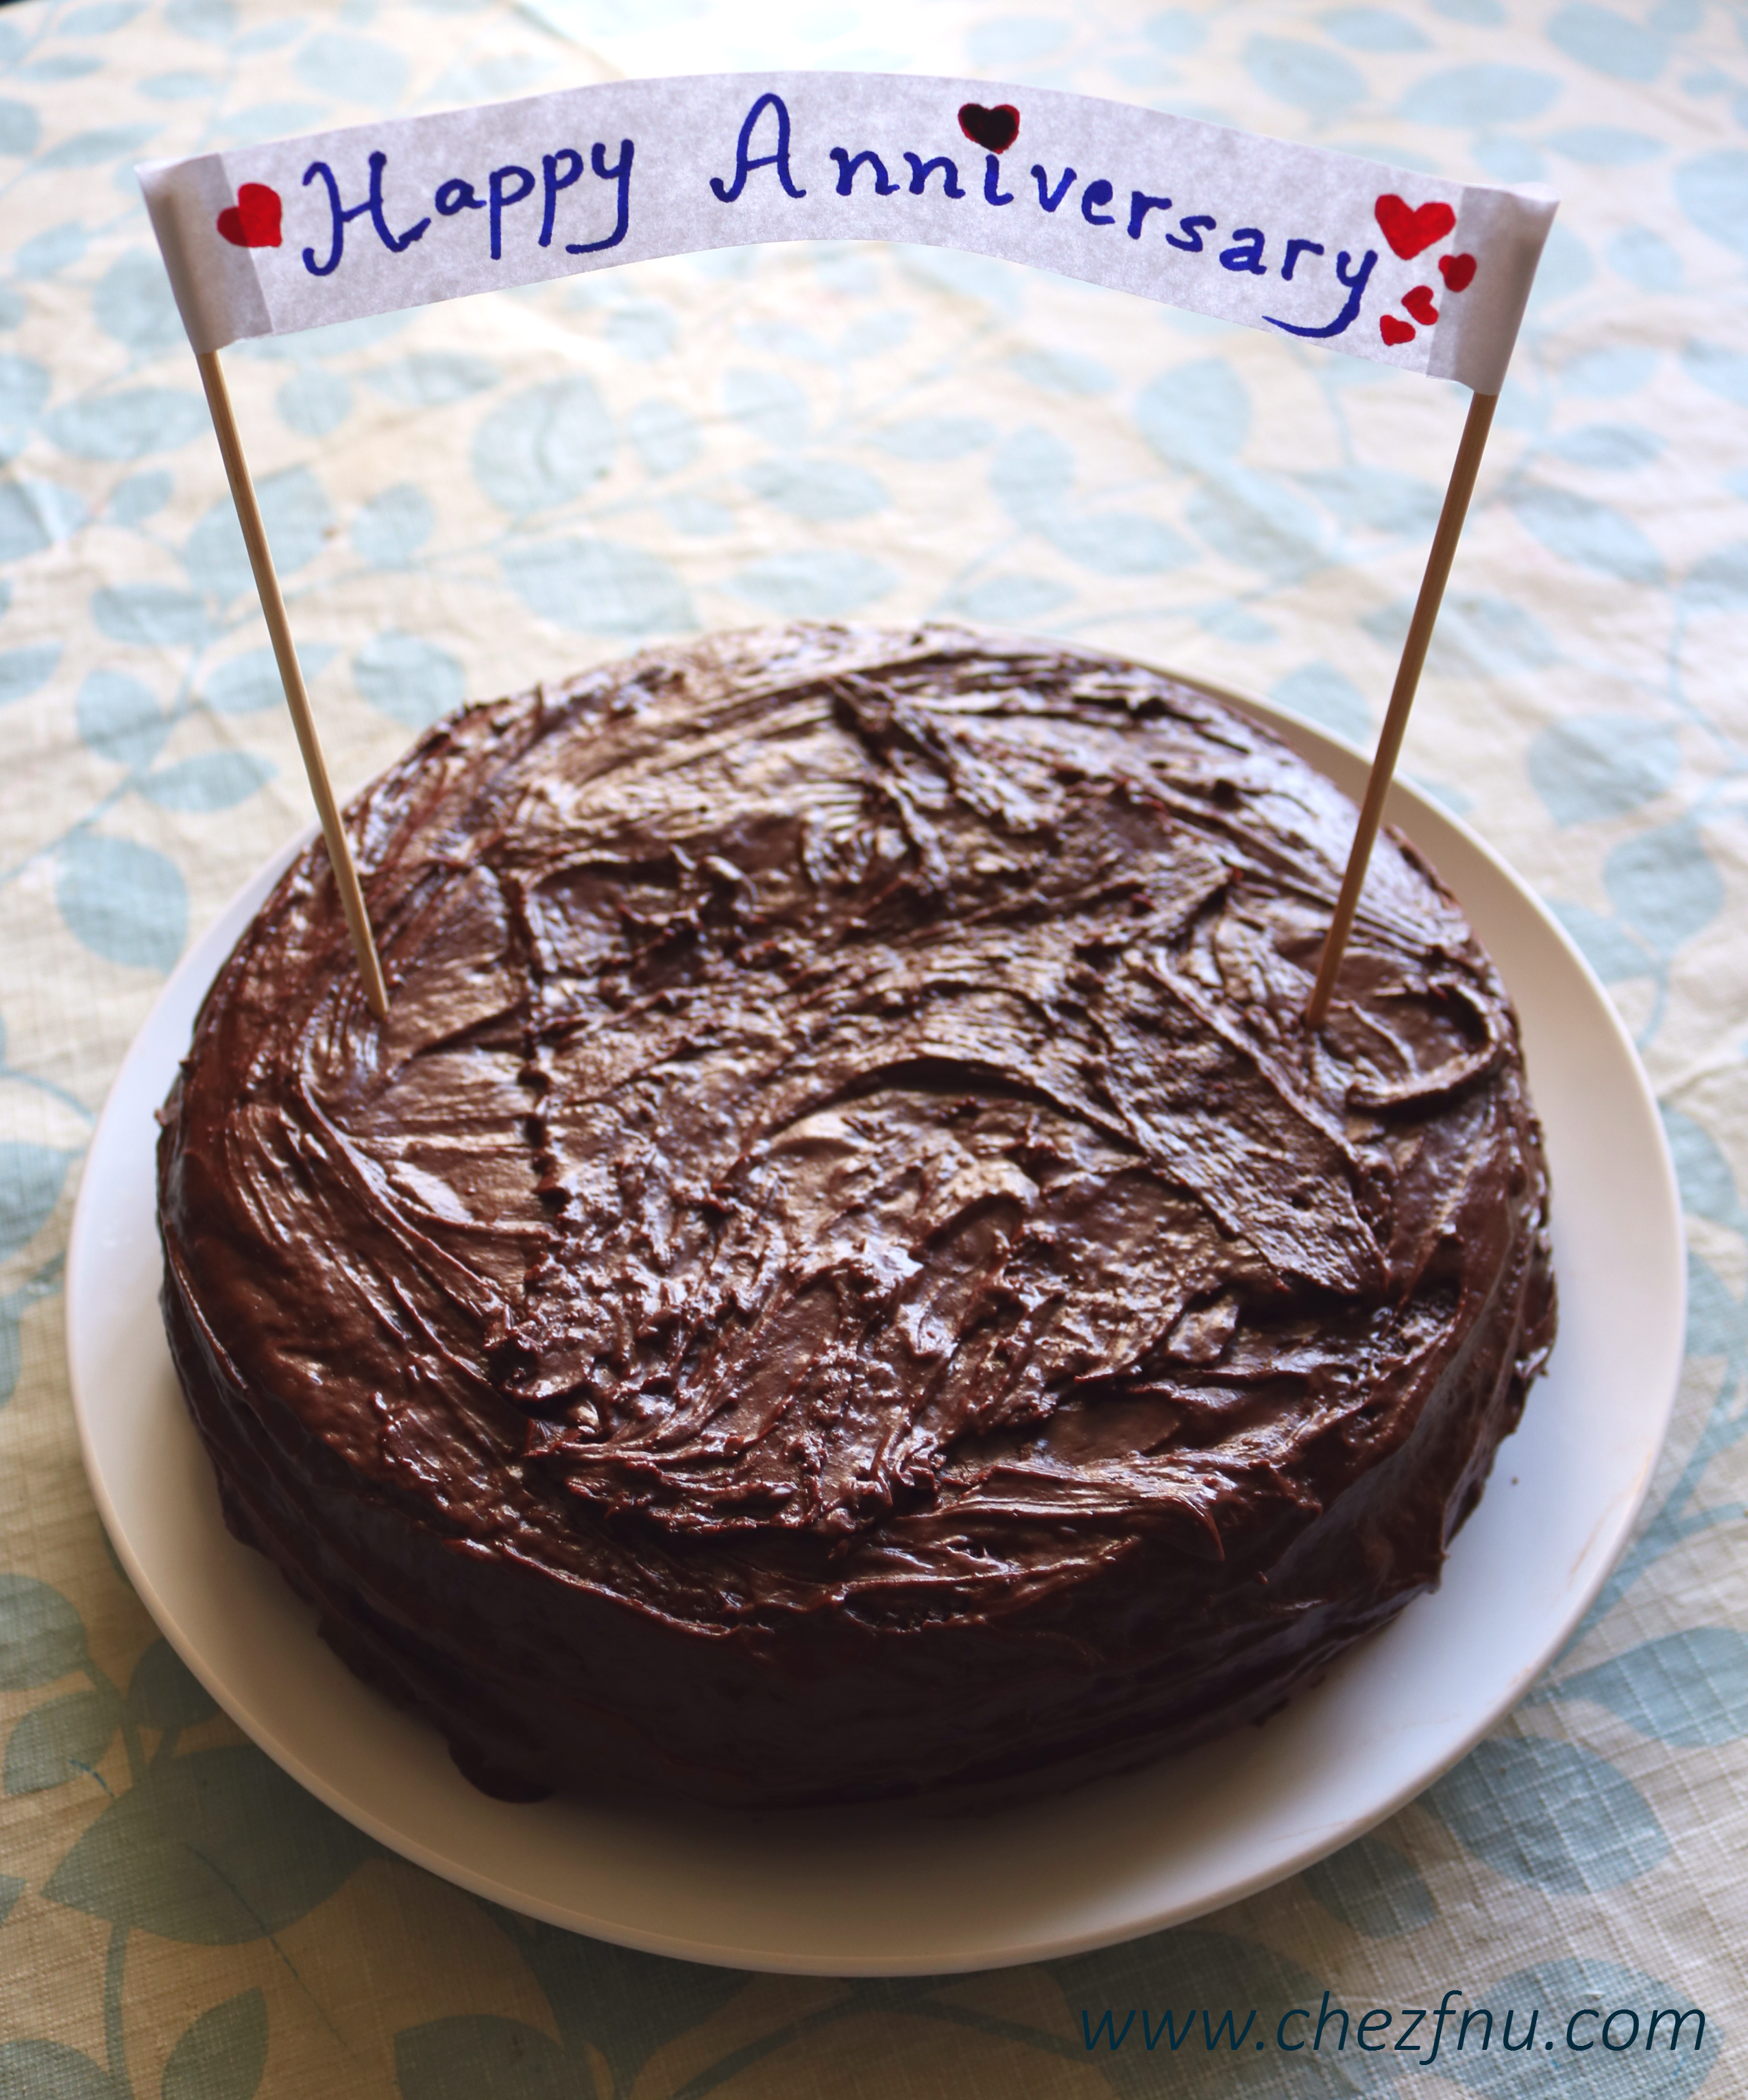 Anniversary special | Cake mix, Dairy free options, Whole ...